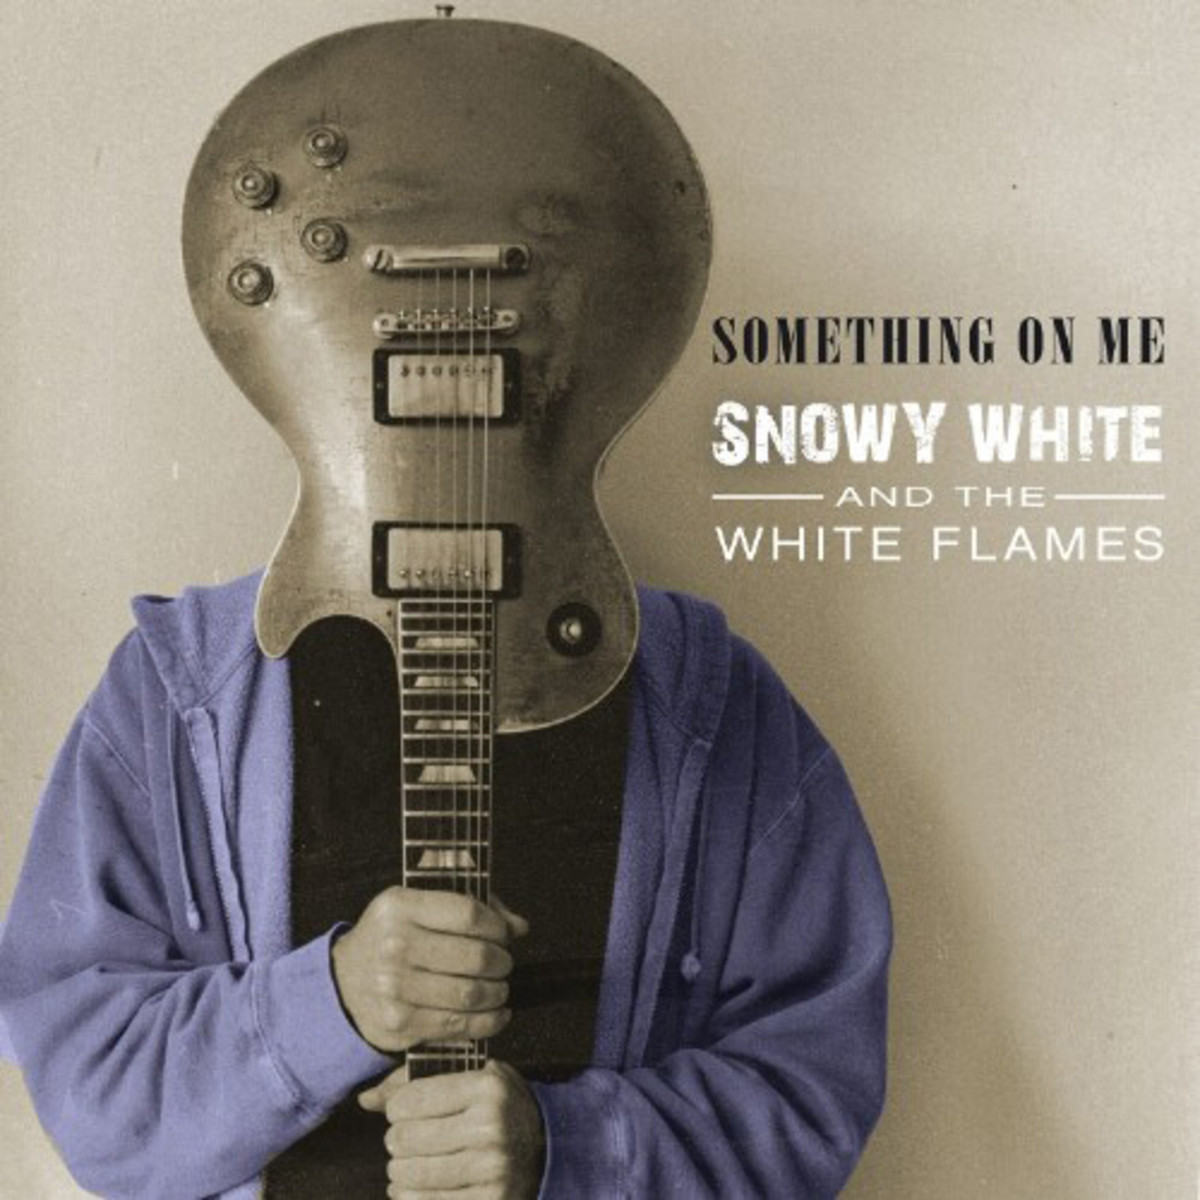 Snowy-White-Something-On-Me-CD-101086-1-1600068386